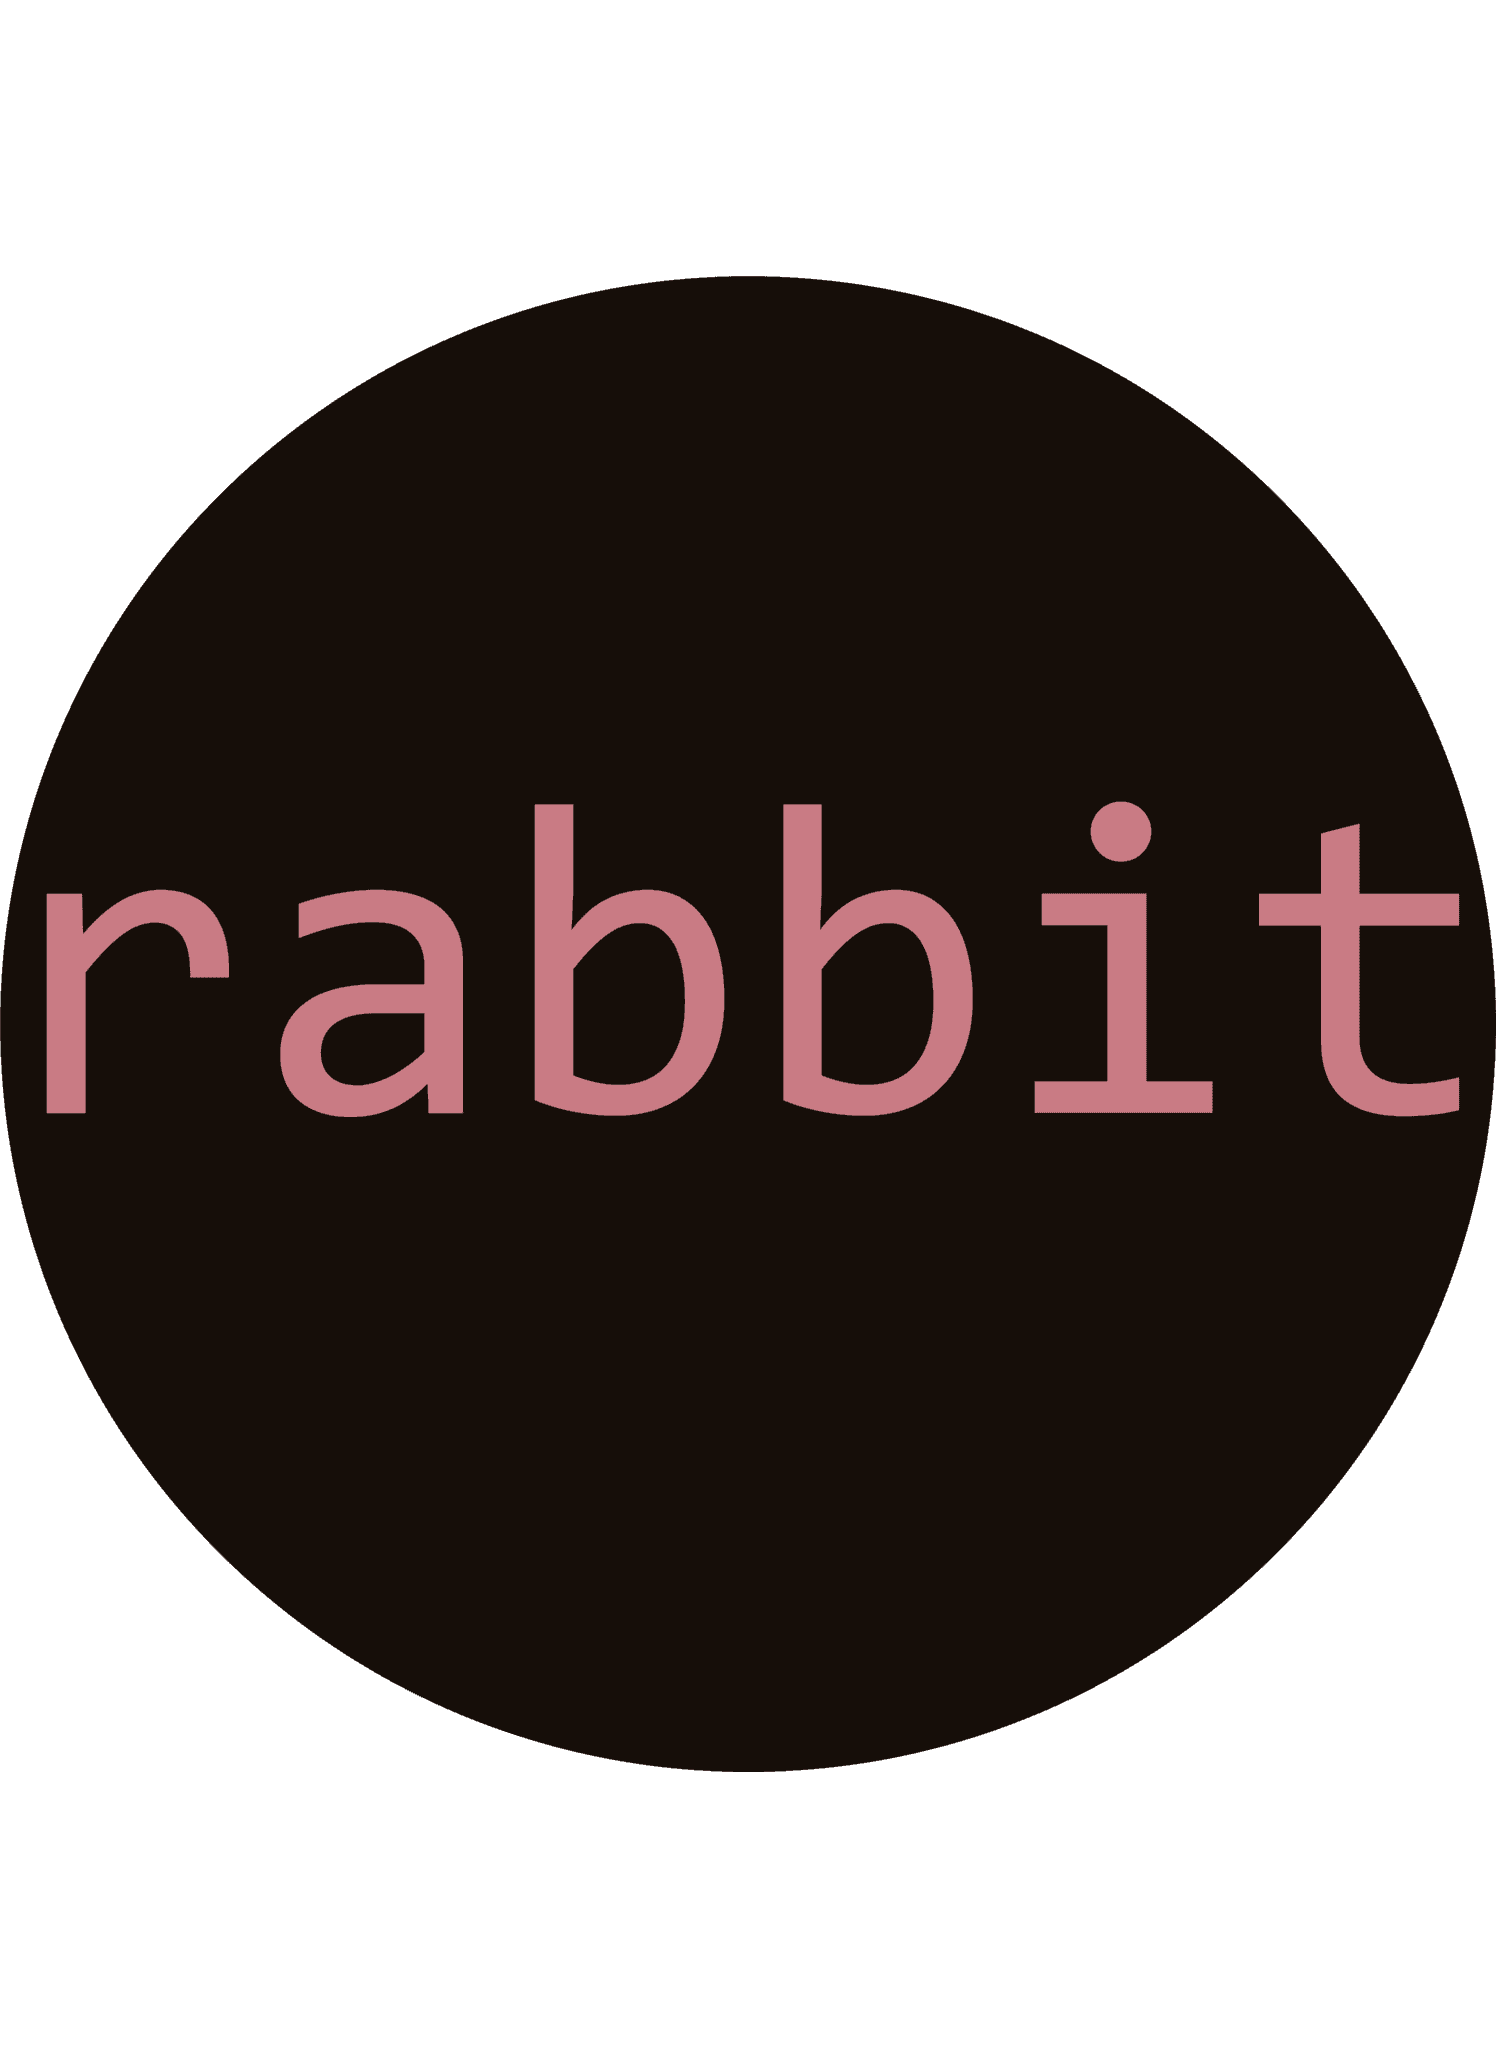 Compress png images for website. Rabbit hole systems web